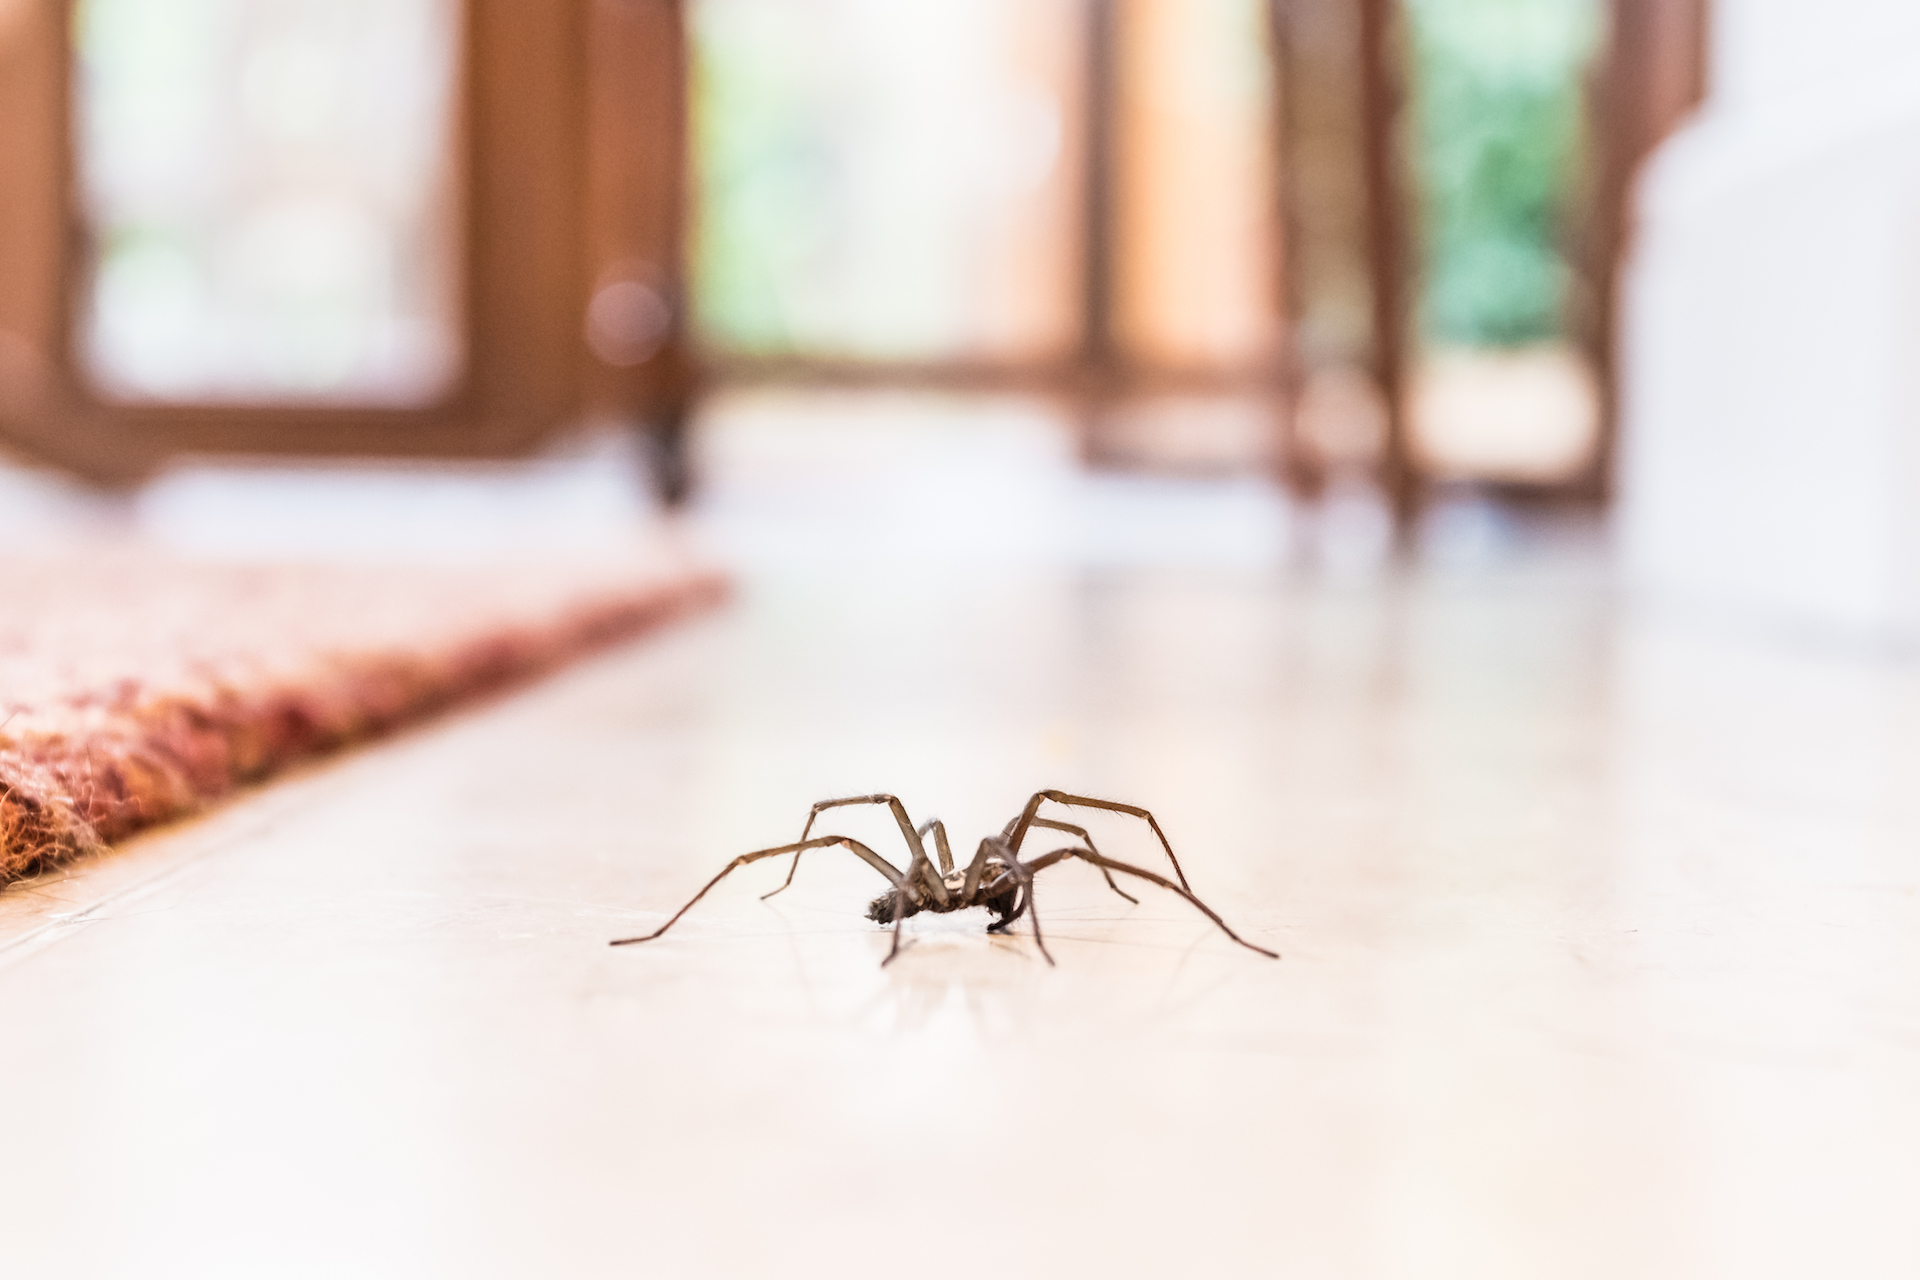 Close up of a spider walking in a house